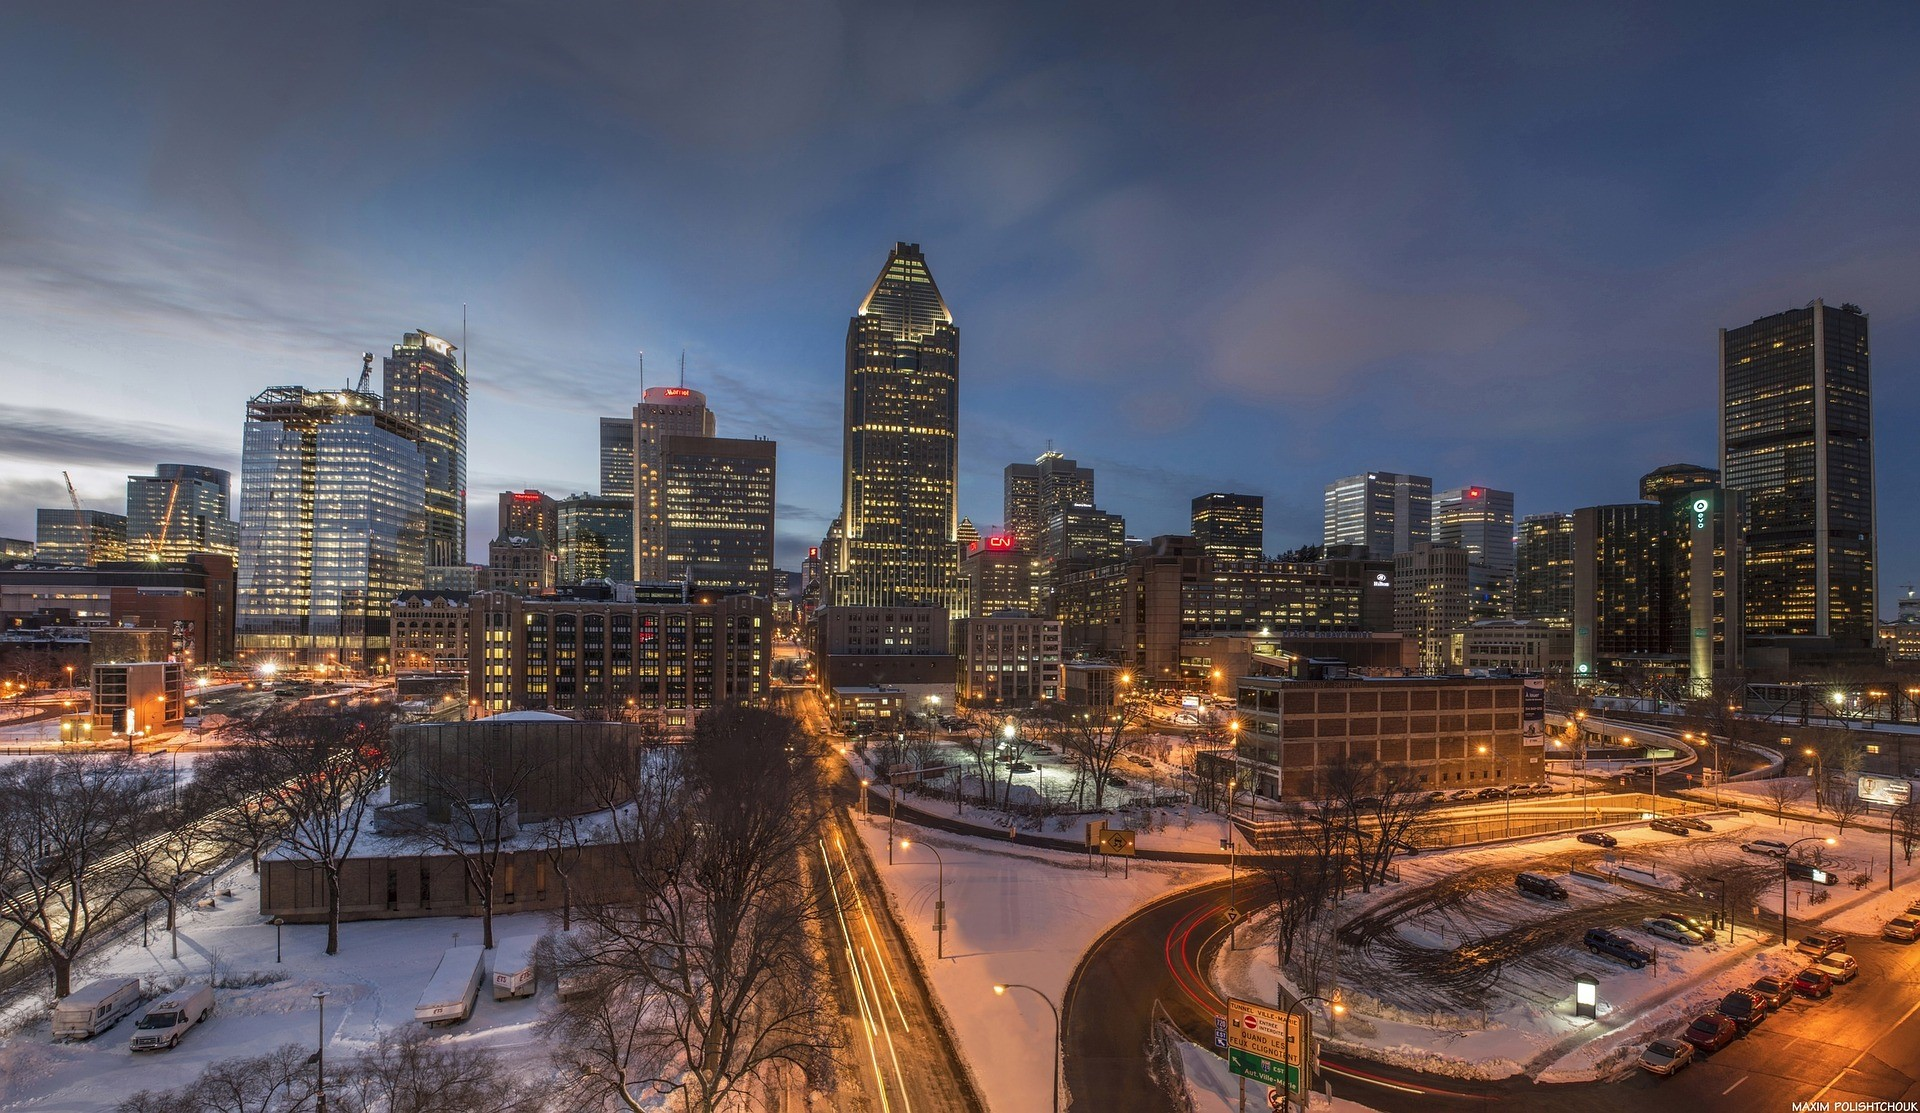 a wintertime view of the Montreal, Quebec skyline at dusk